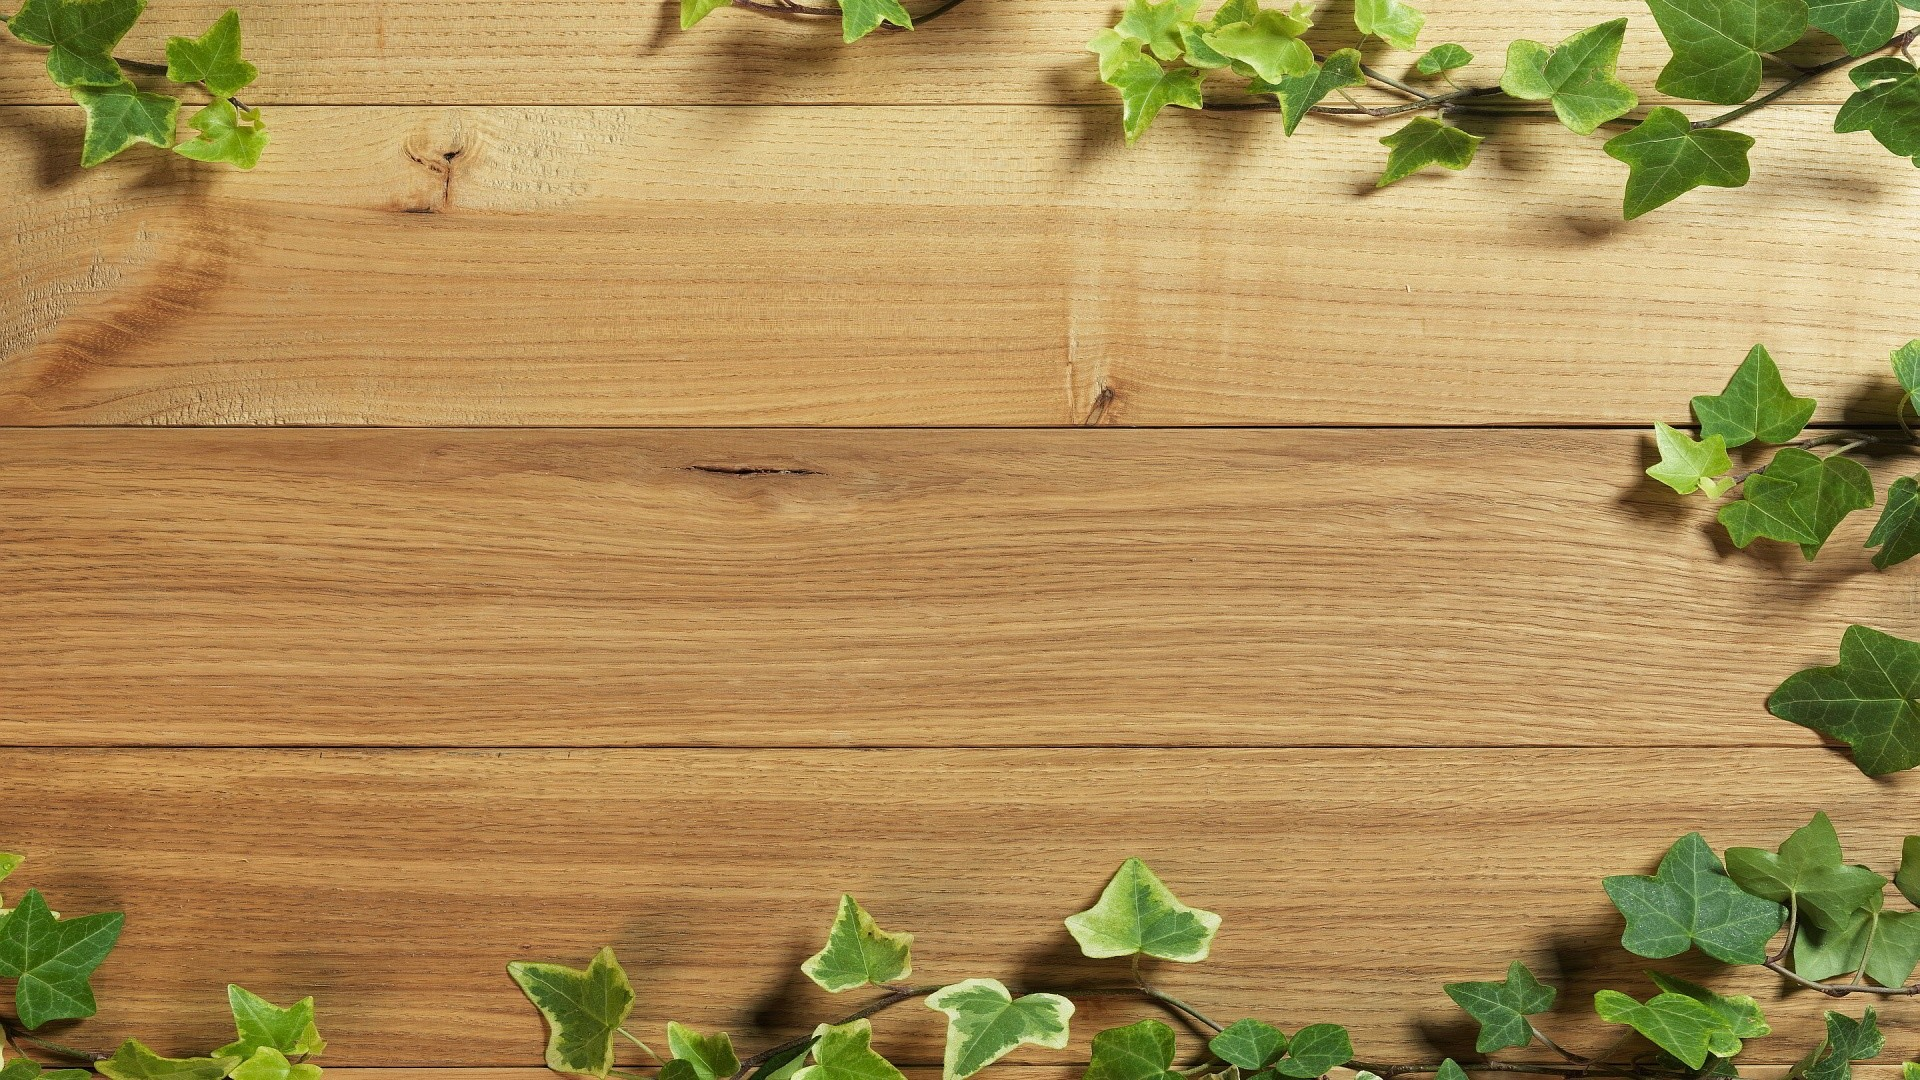 Wood Wallpaper 1080p 73 Images